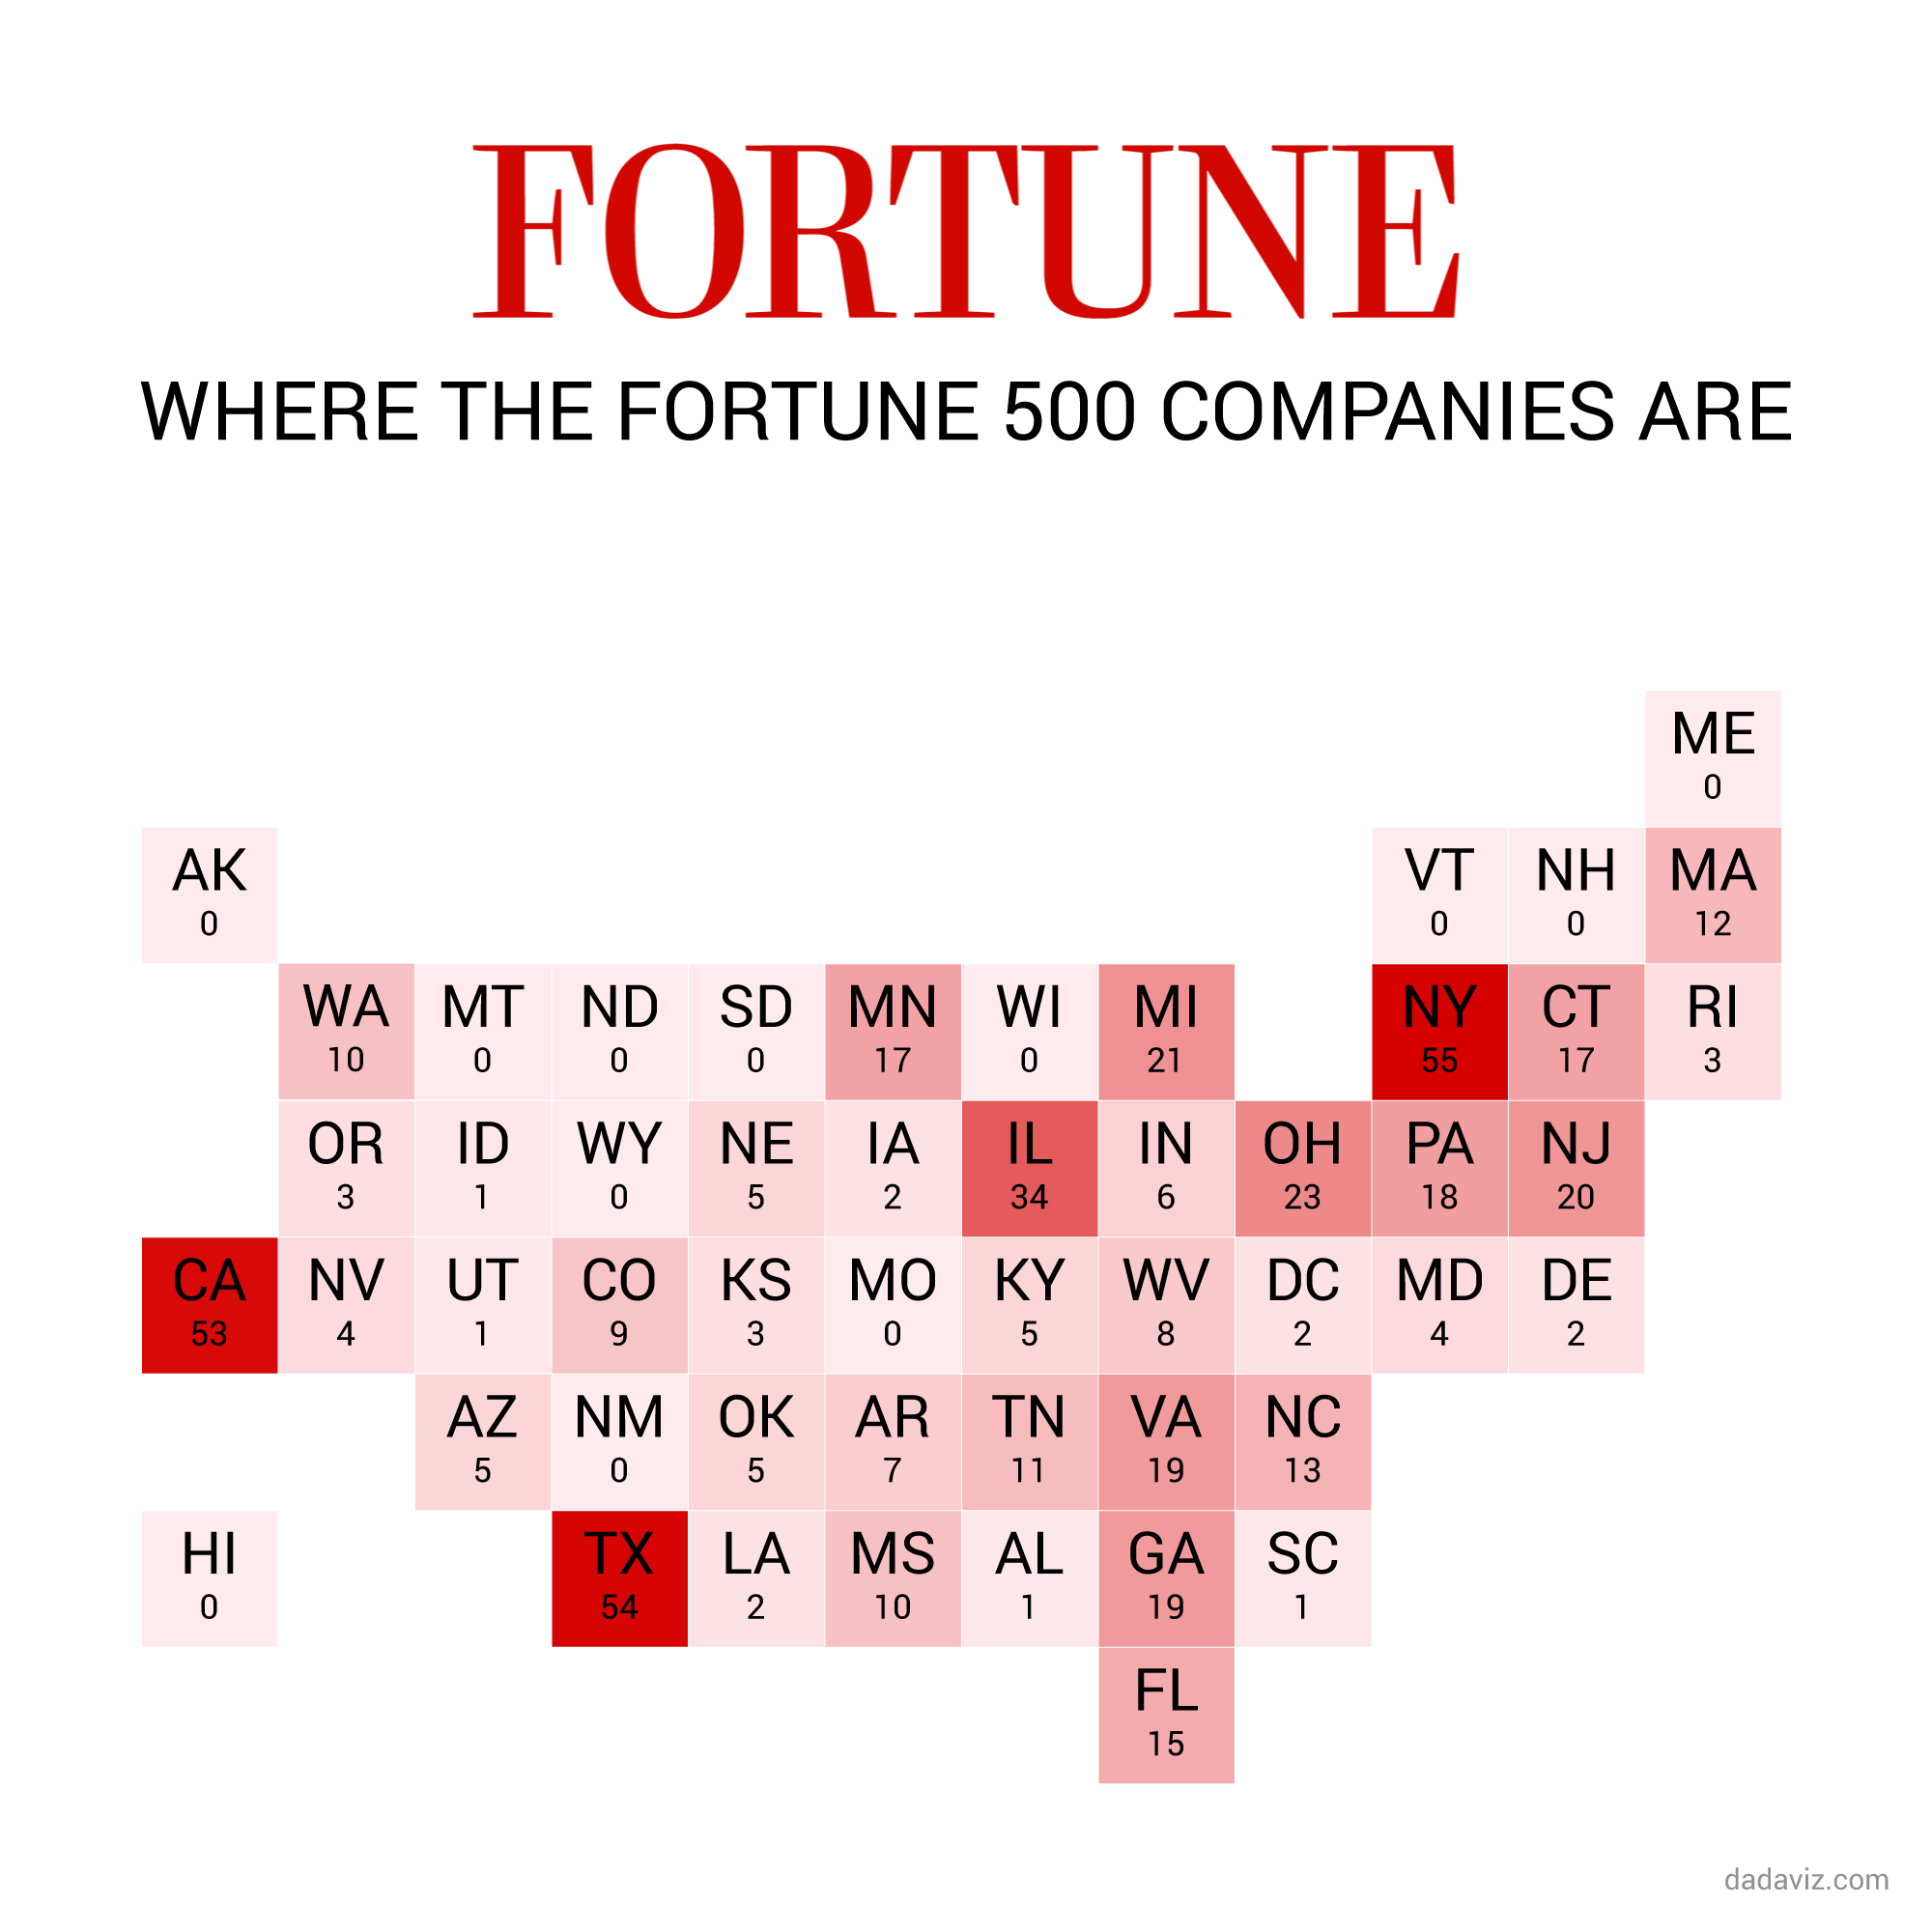 the fortune 500 Even as the internet age ushers in new giants such as into the top 10 of the  fortune 500, some familiar faces have stood the test of time.